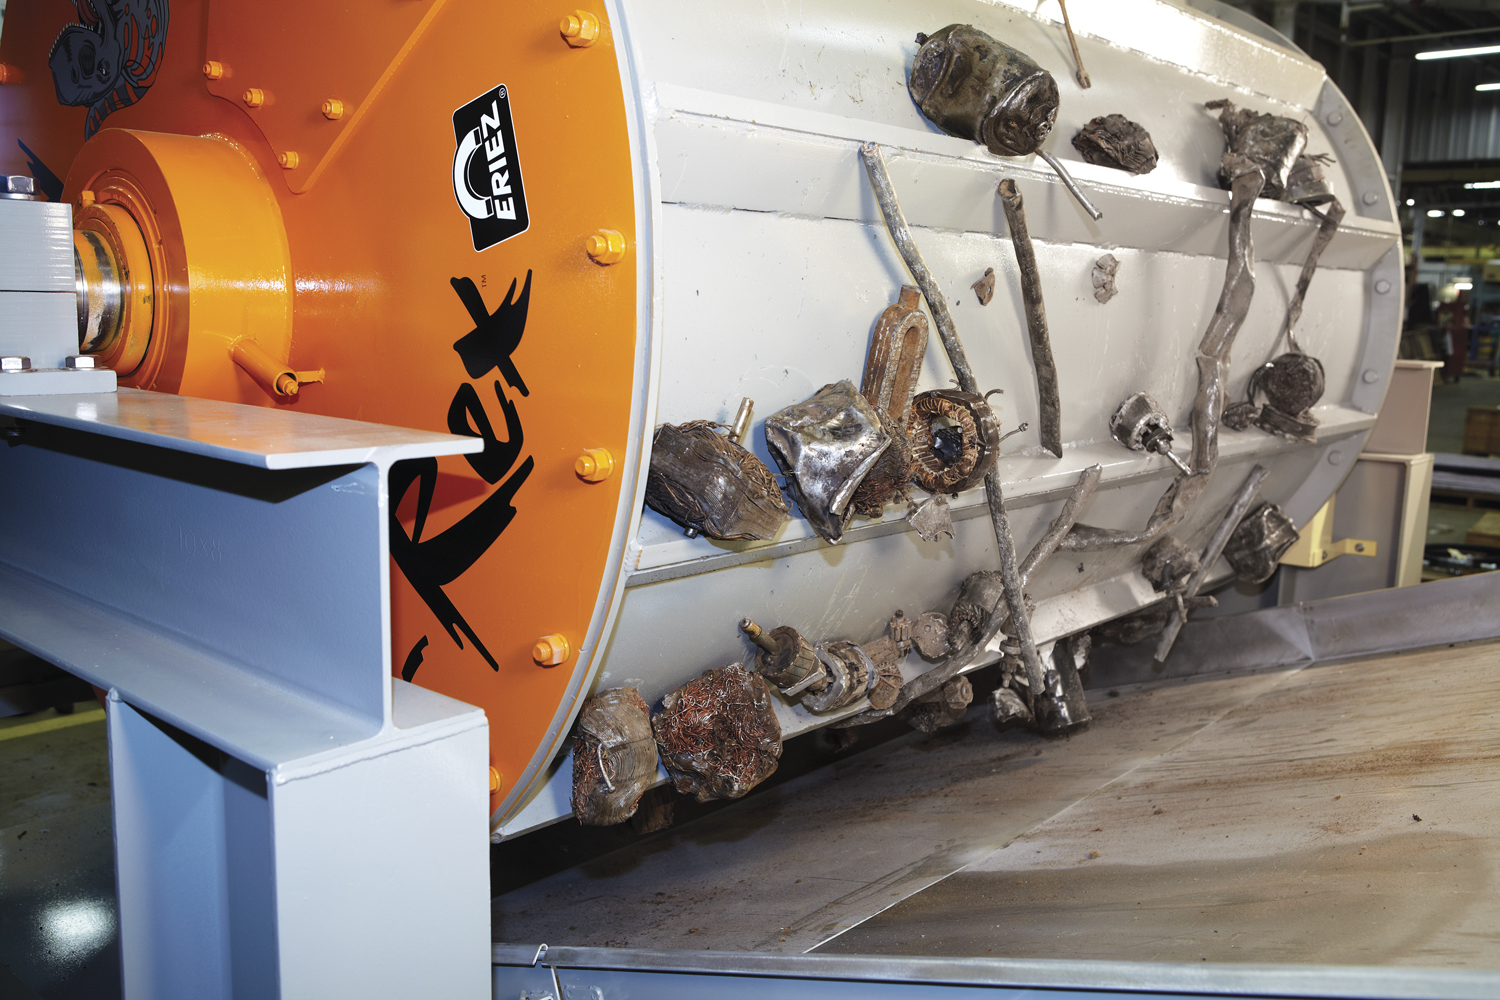 Eriez Offers Solution to Meatball Problems with New Scrap Drum